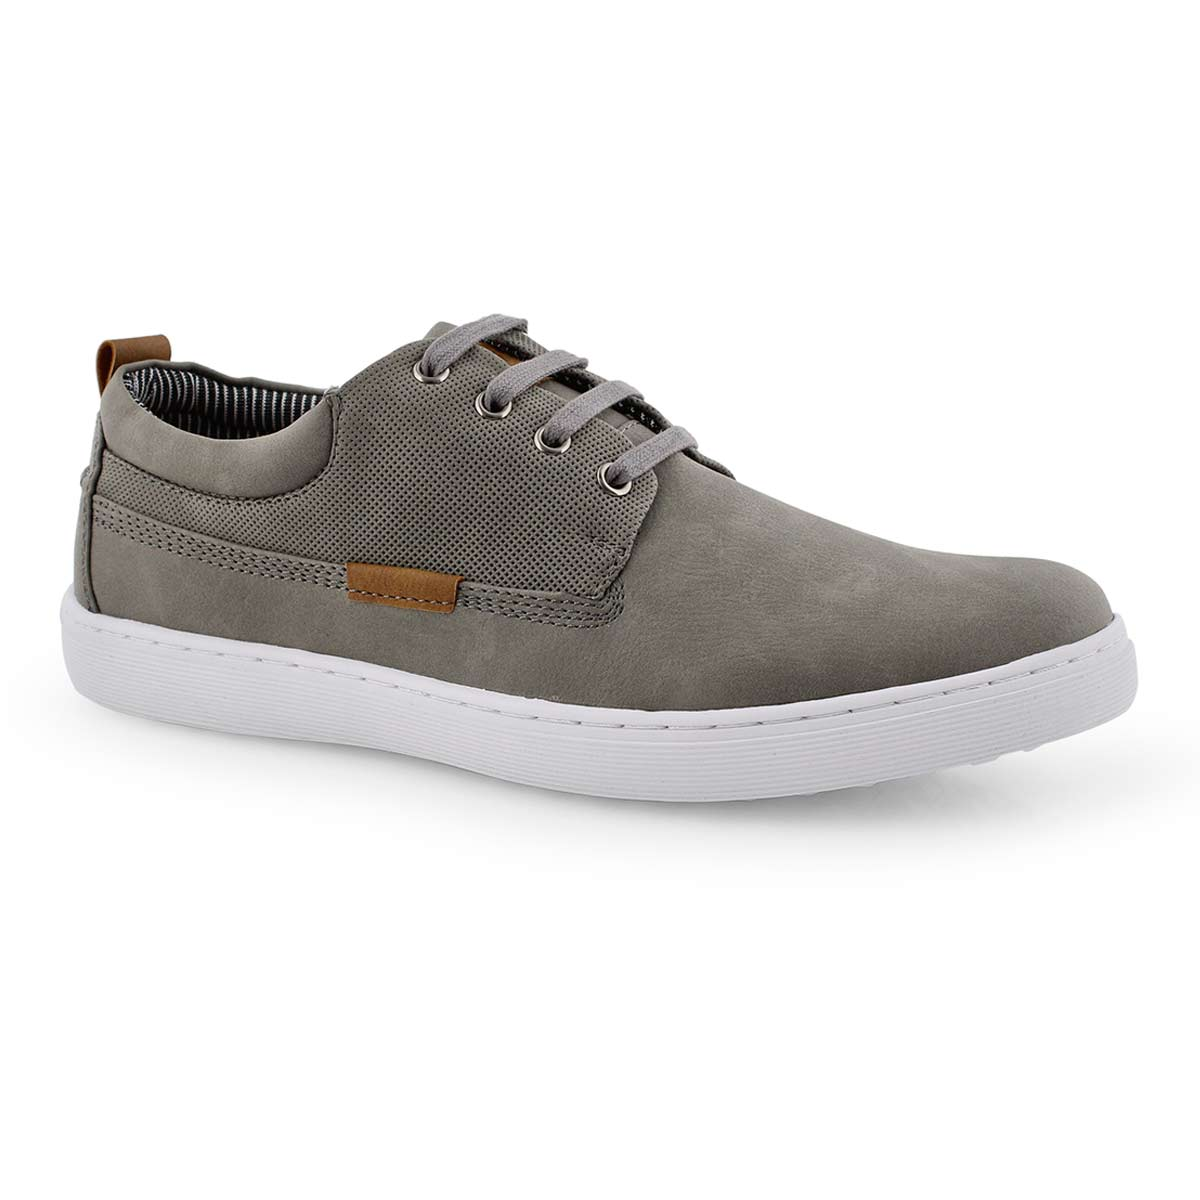 Mns Hardaway grey lace up casual sneaker